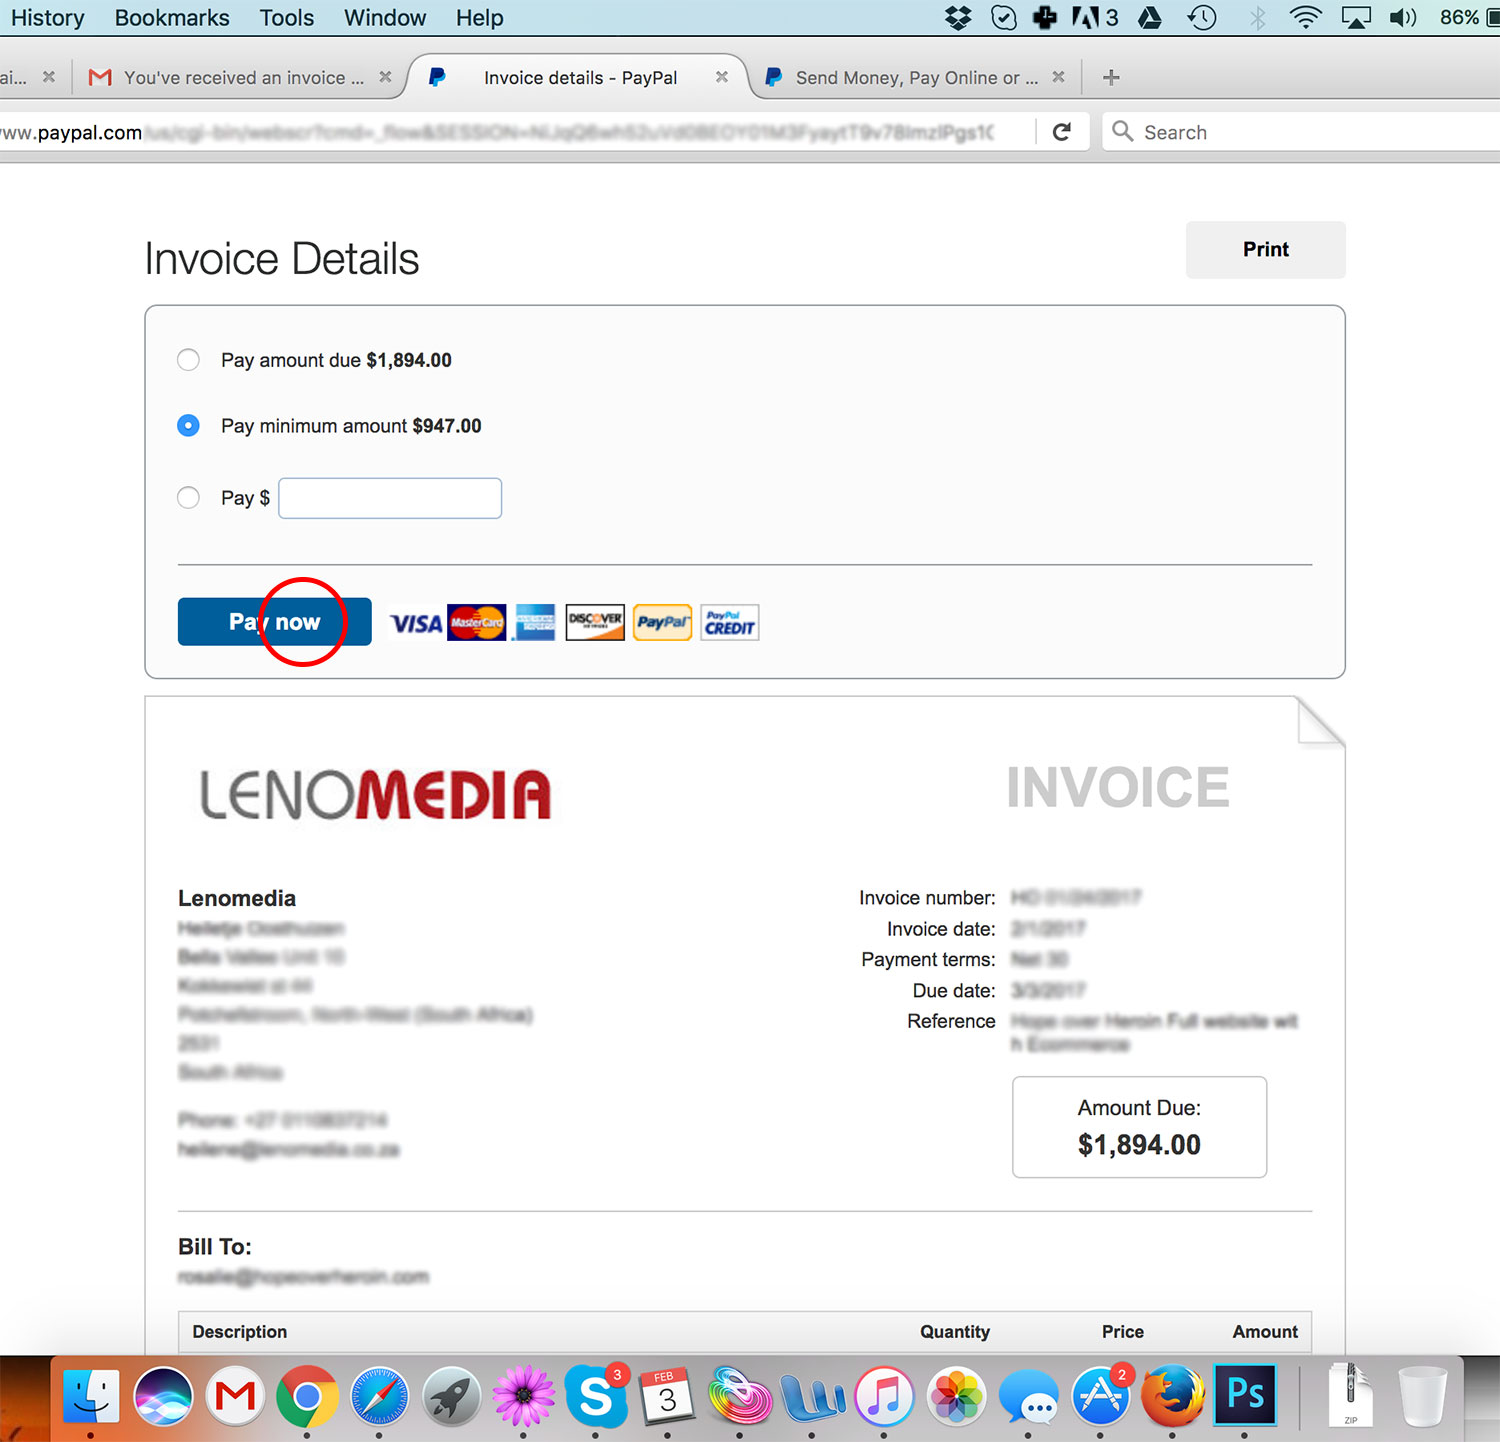 How To Get An Invoice From Paypal How To Pay A Paypal Invoice Without A Paypal Account